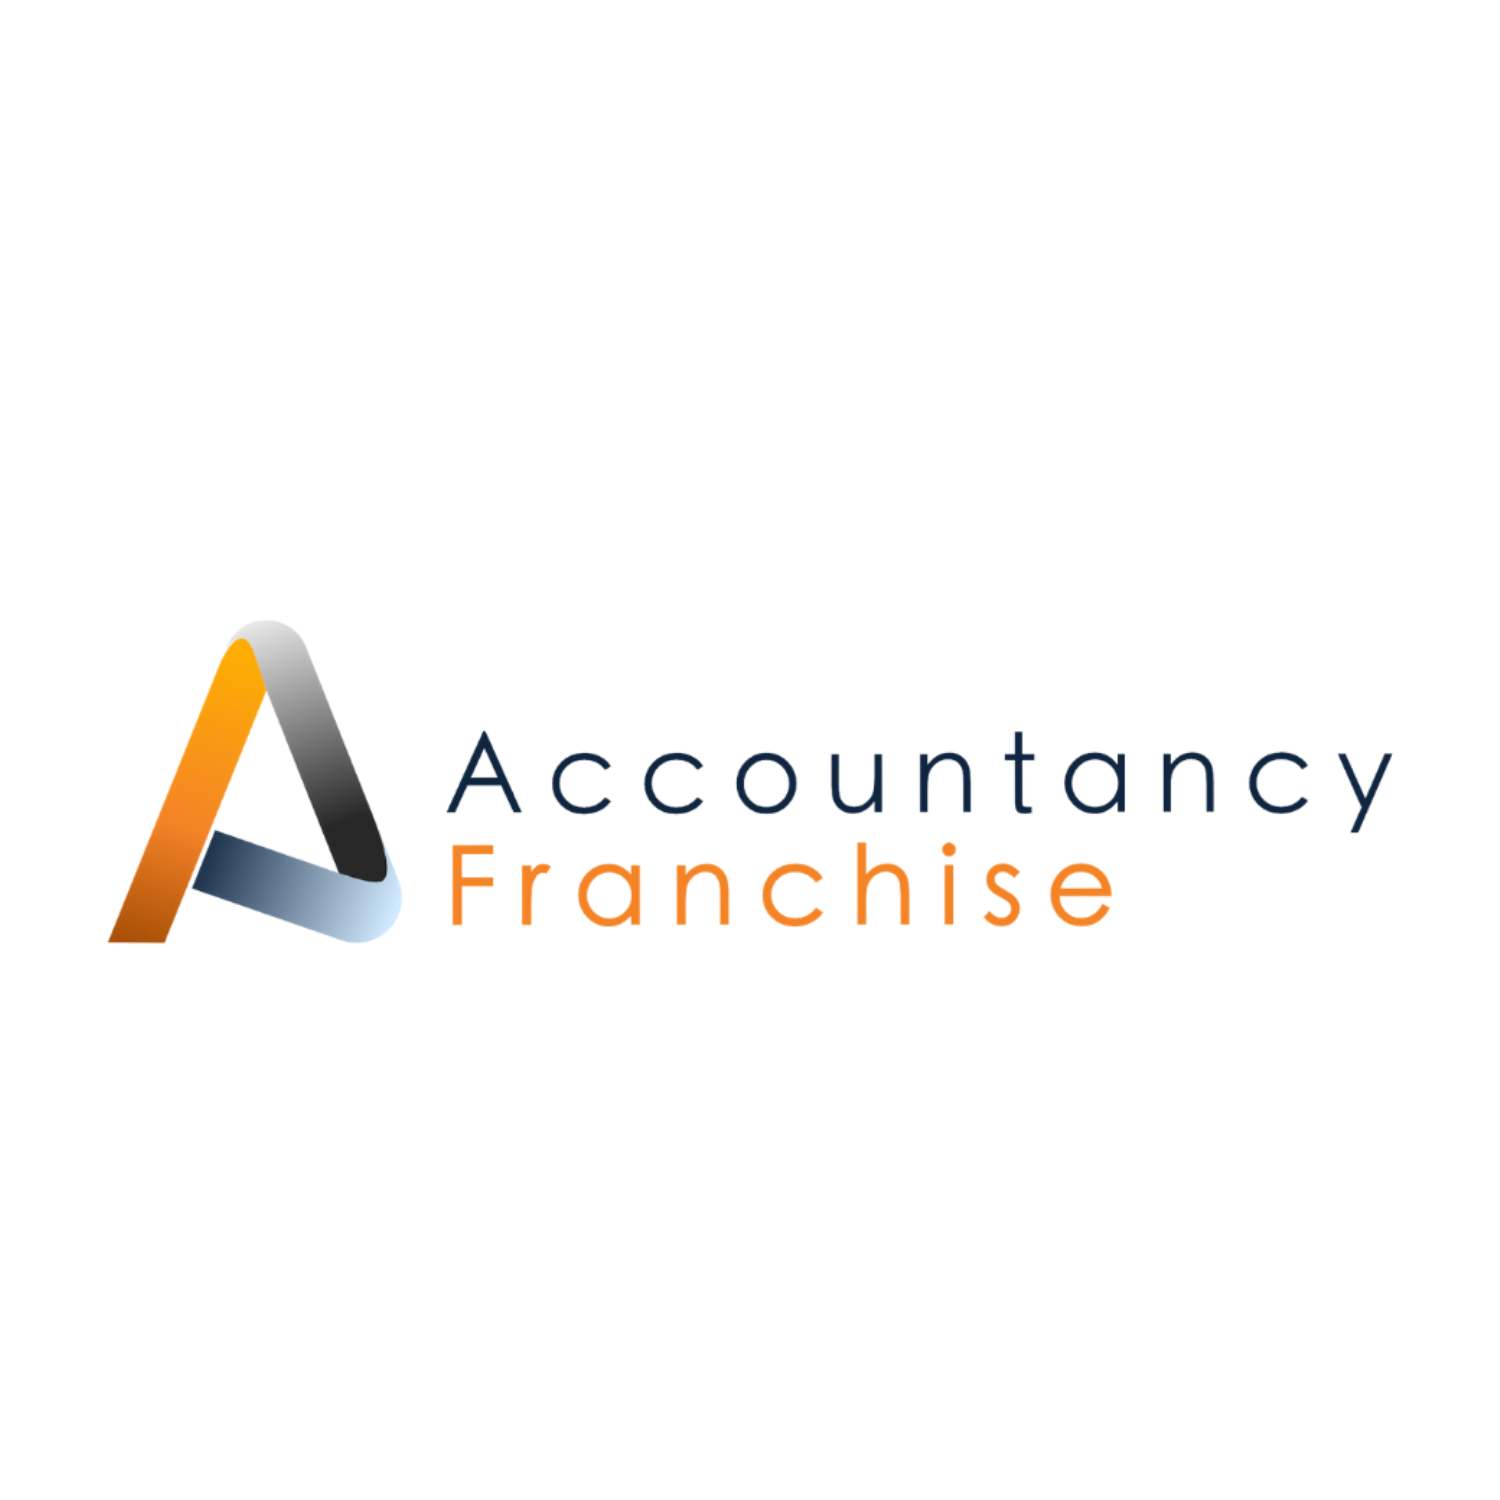 The Accountancy Franchise